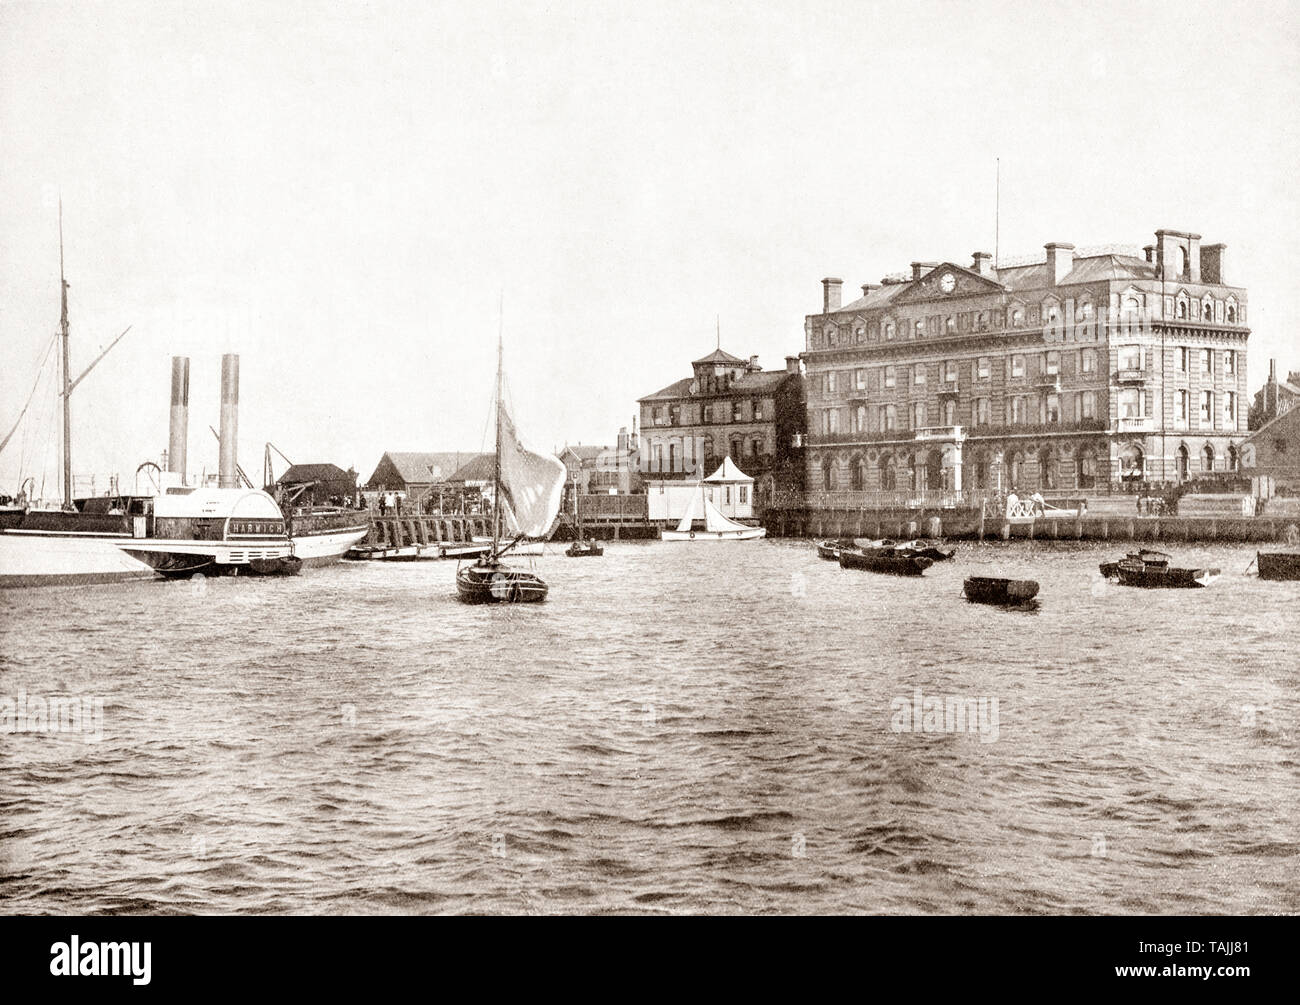 A late 19th Century view of the 'Harwich' paddle steamer quay and Great Western Hotel in Harwich, a town in Essex, England and one of the Haven ports, located on the coast with the North Sea to the east. Its position on the estuaries of the Stour and Orwell rivers and its usefulness to mariners as the only safe anchorage between the Thames and the Humber led to a long period of maritime significance, both civil and military. - Stock Image